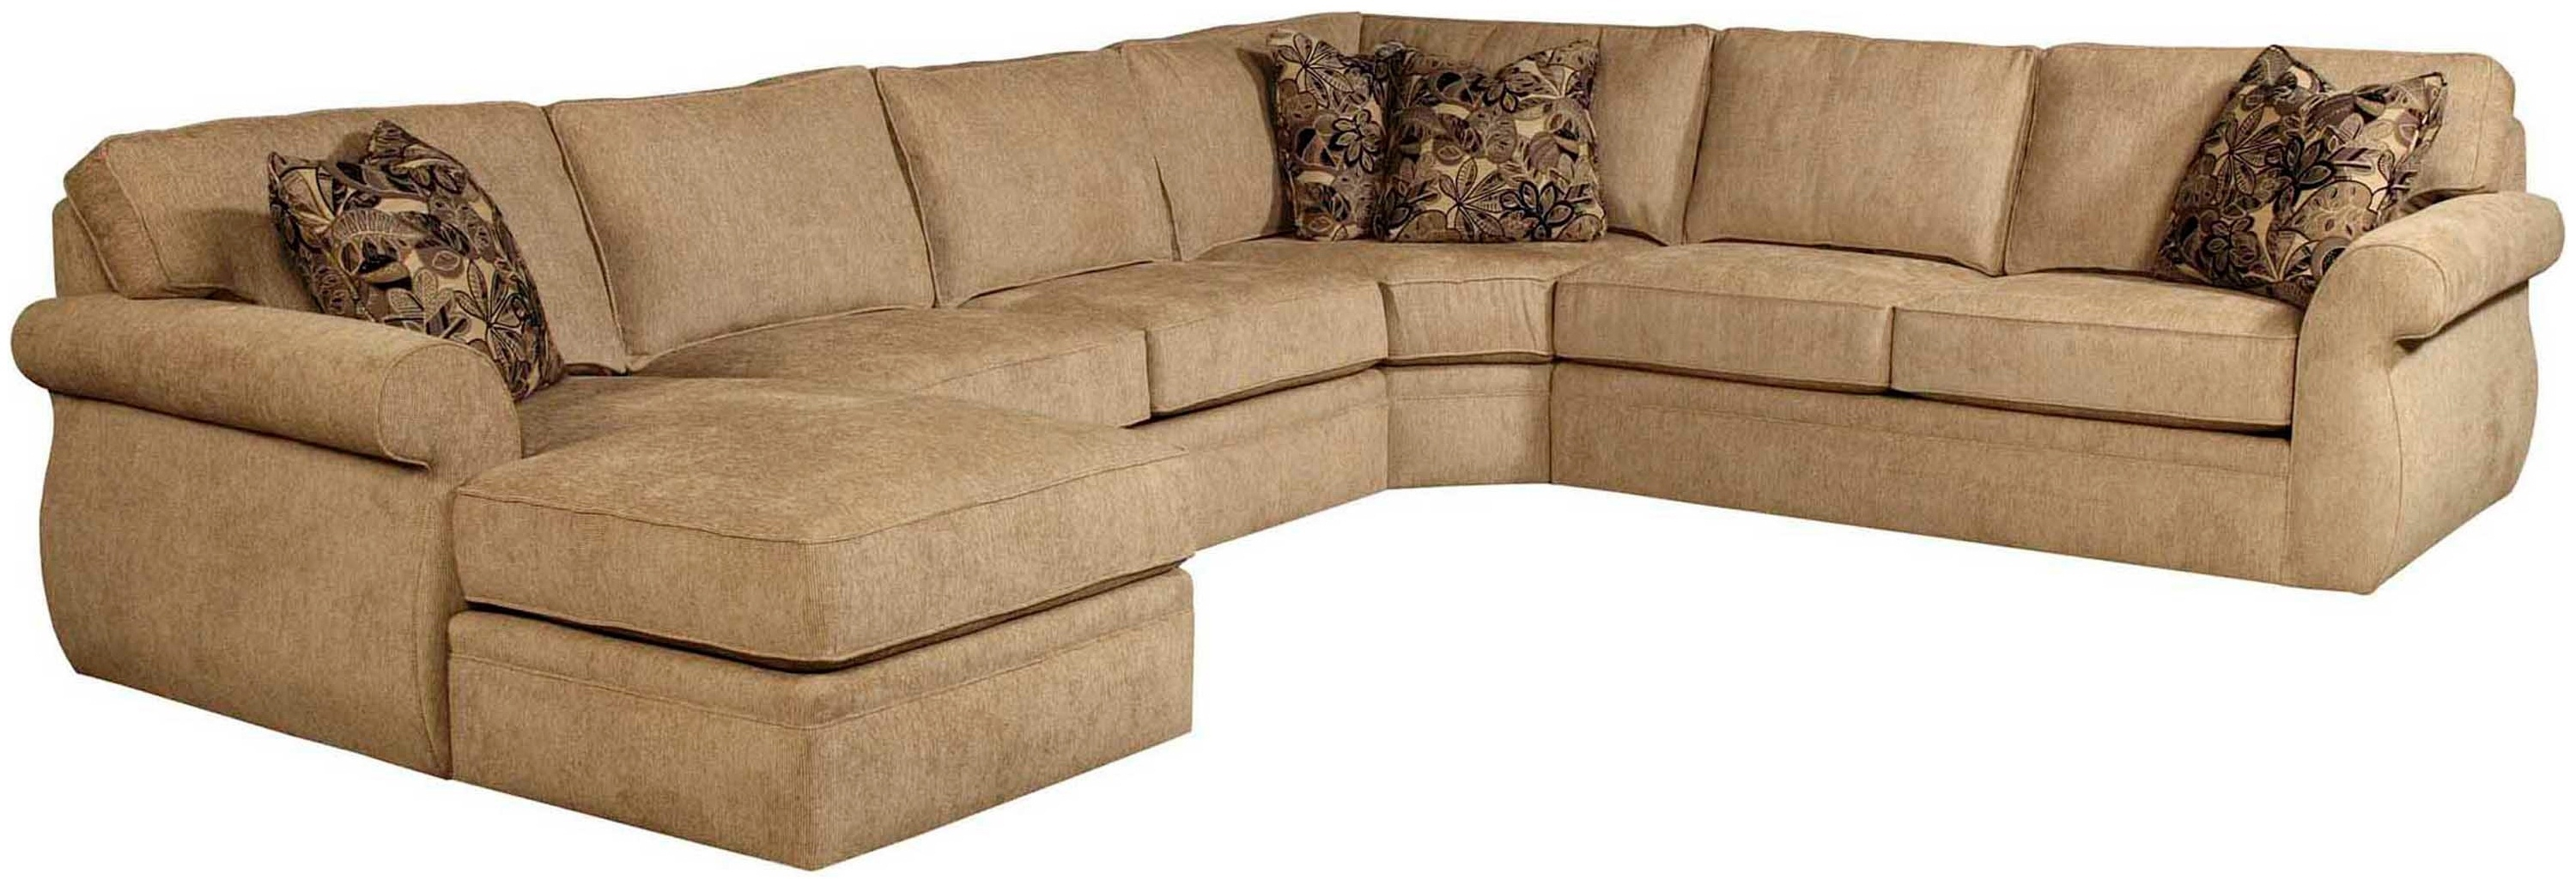 Broyhill Sectional Sofa | Aifaresidency Throughout Sectional Sofas At Broyhill (Image 7 of 10)